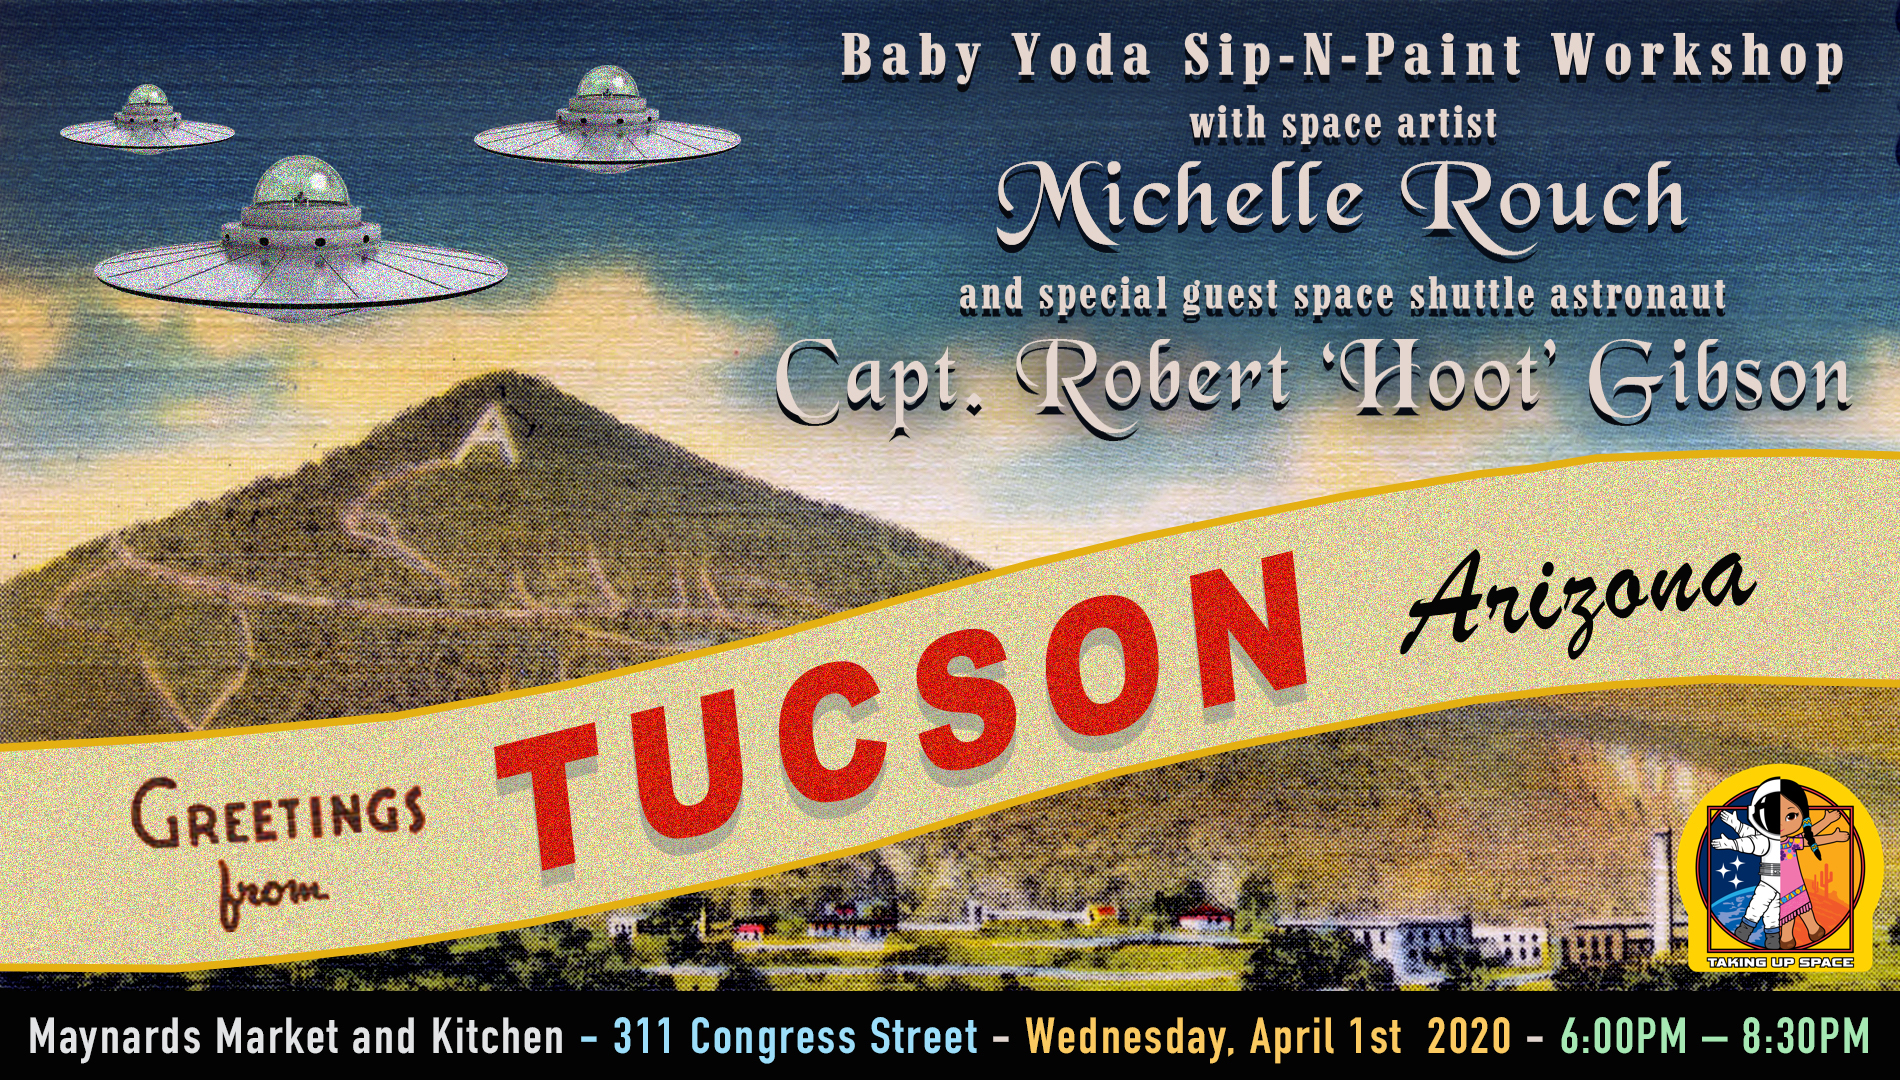 Baby Yoda Paint-N-Sip Fundraiser with an Astronaut!